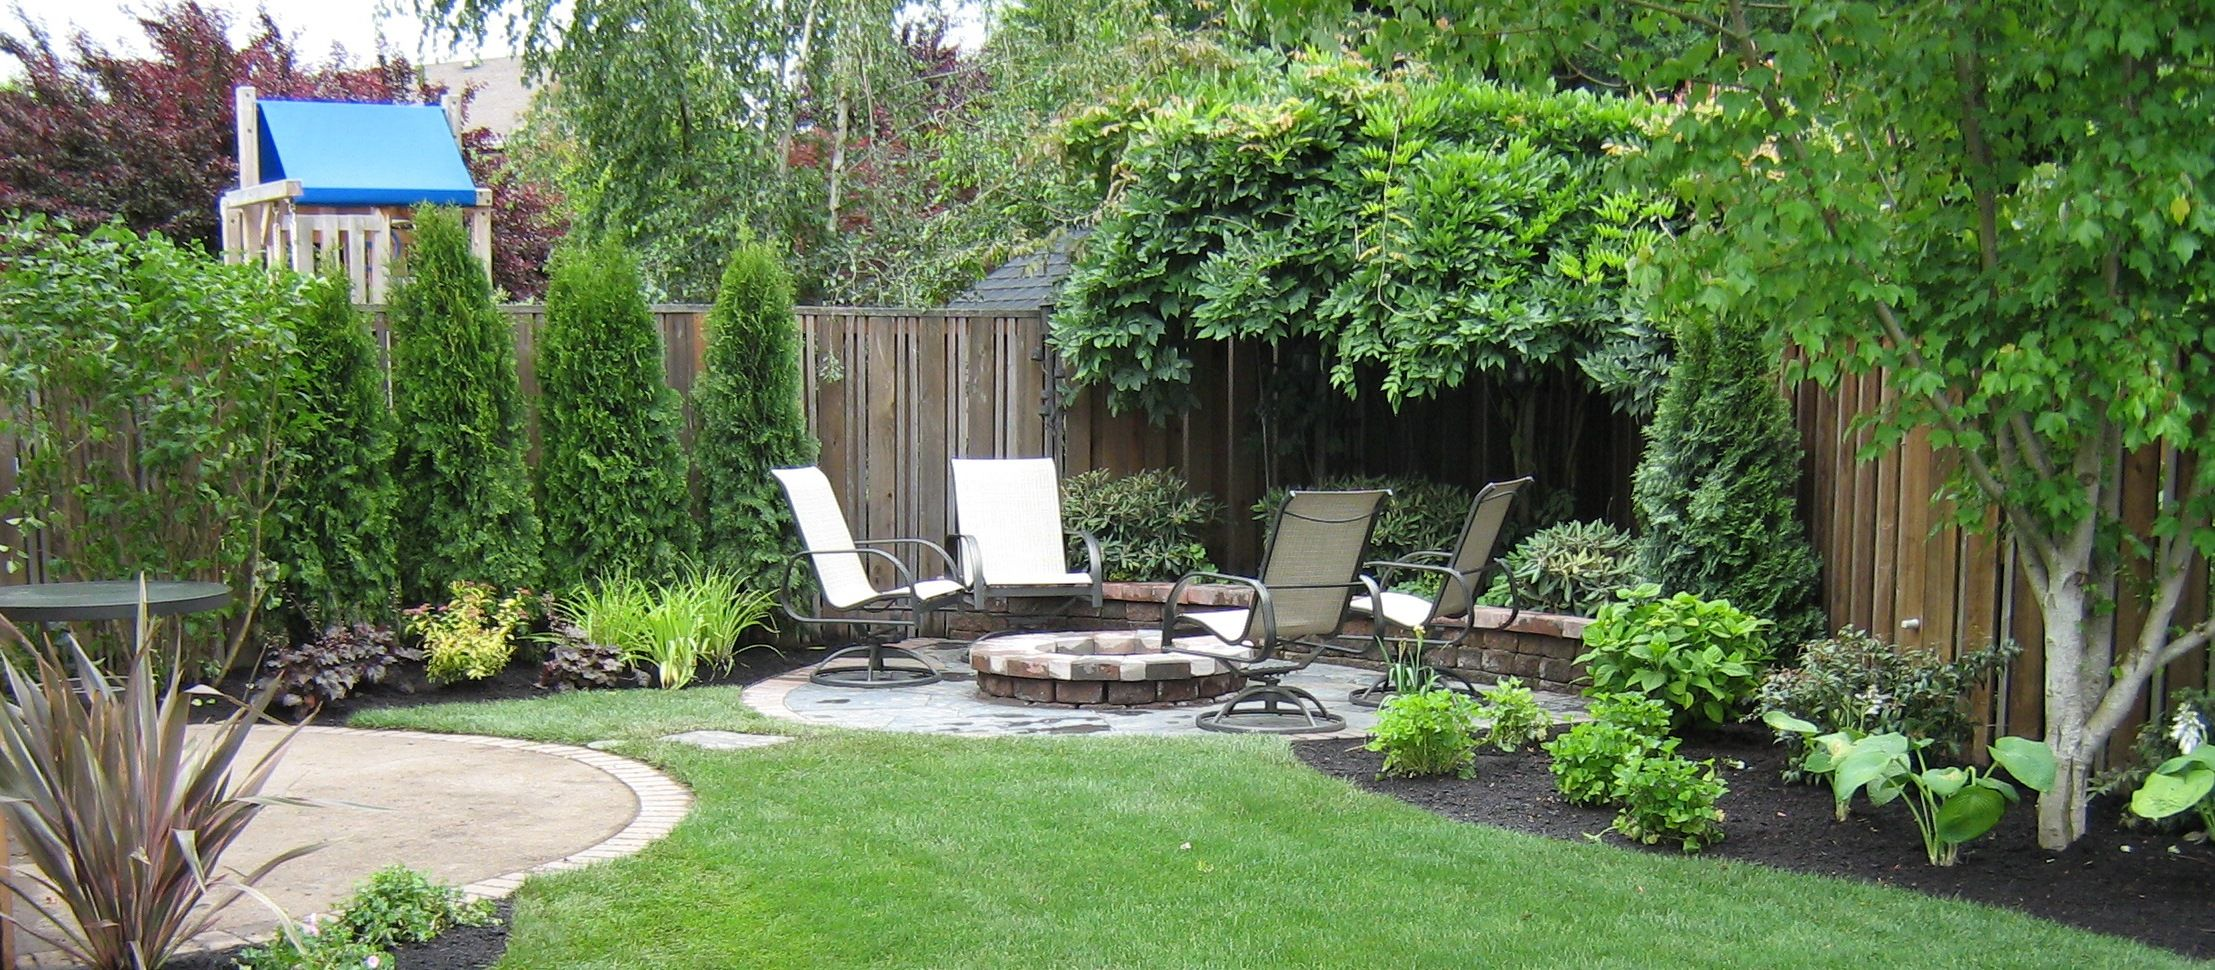 Small backyard landscaping ideas photos garden design for Little garden design